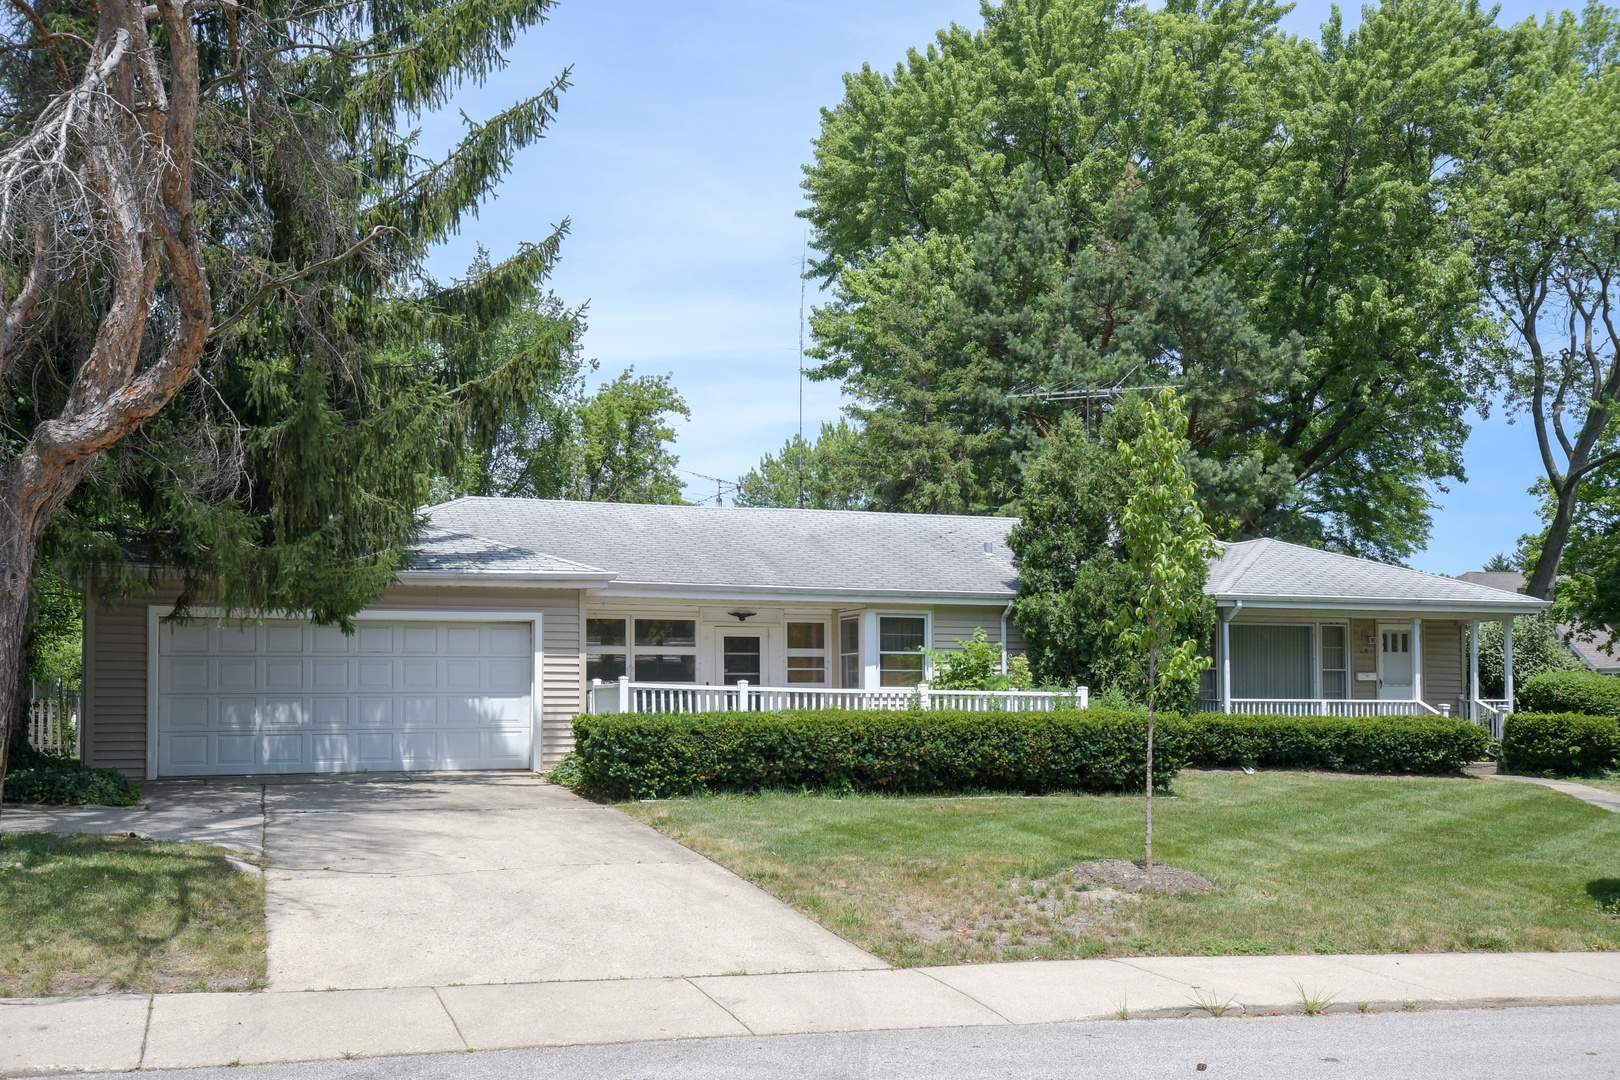 Single Story property for sale at 24 ELM Street, Glenview Illinois 60025